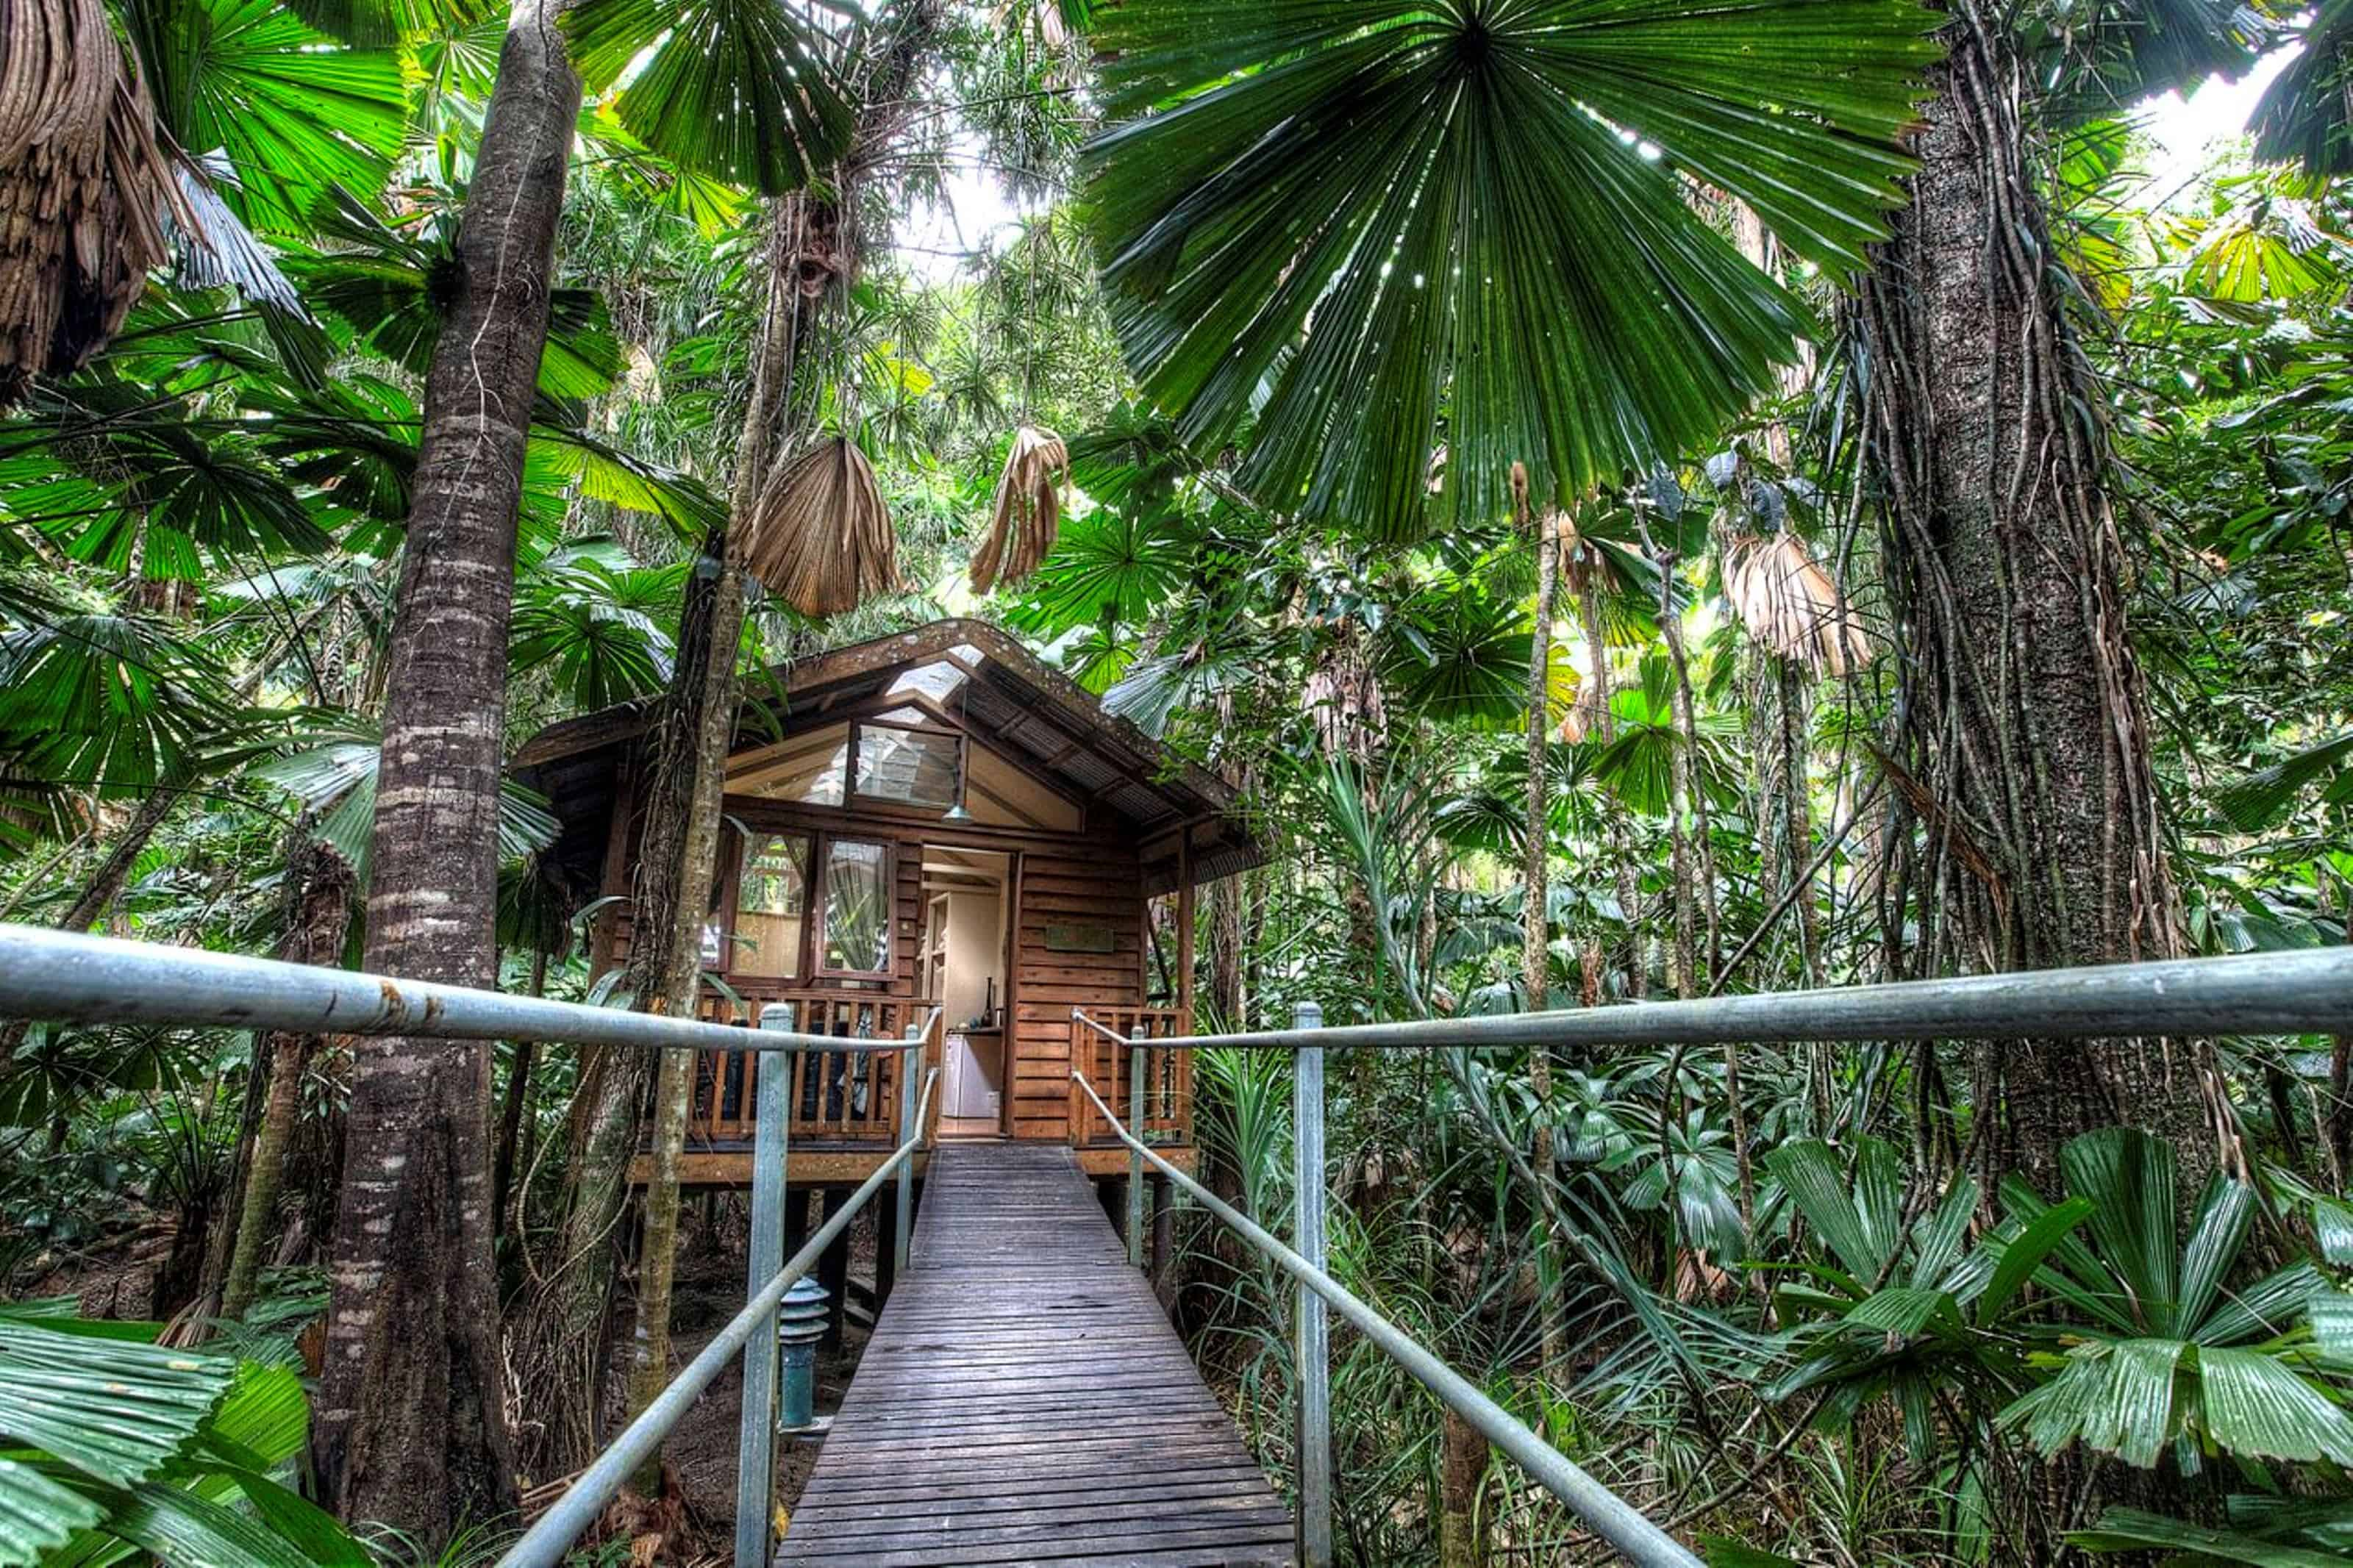 daintree wilderness eco lodge, australia